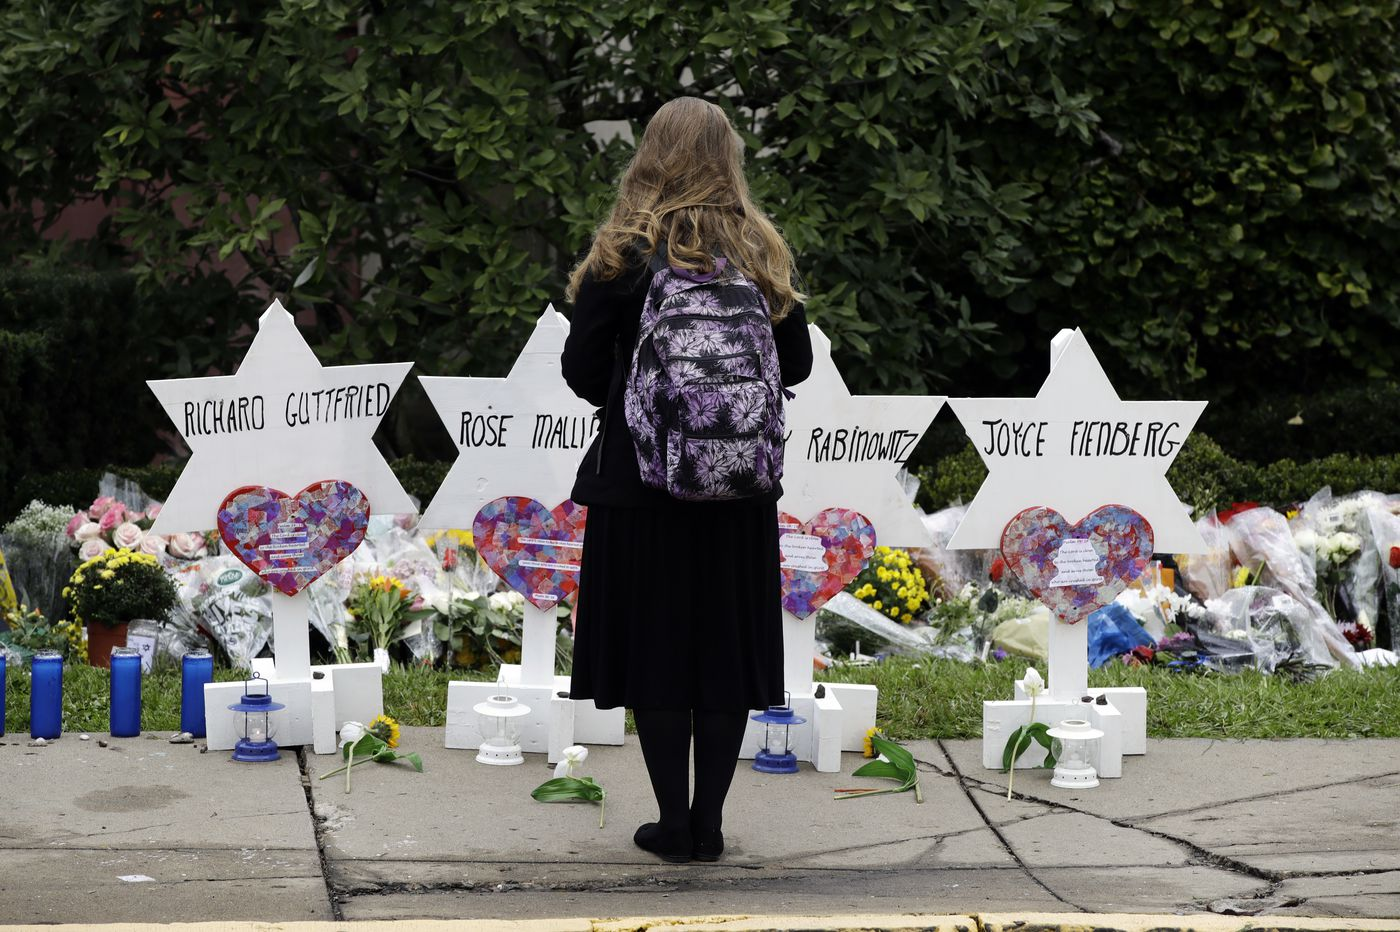 5 questions about gun policy that you should be asking your elected officials after the Pittsburgh synagogue shooting | Opinion